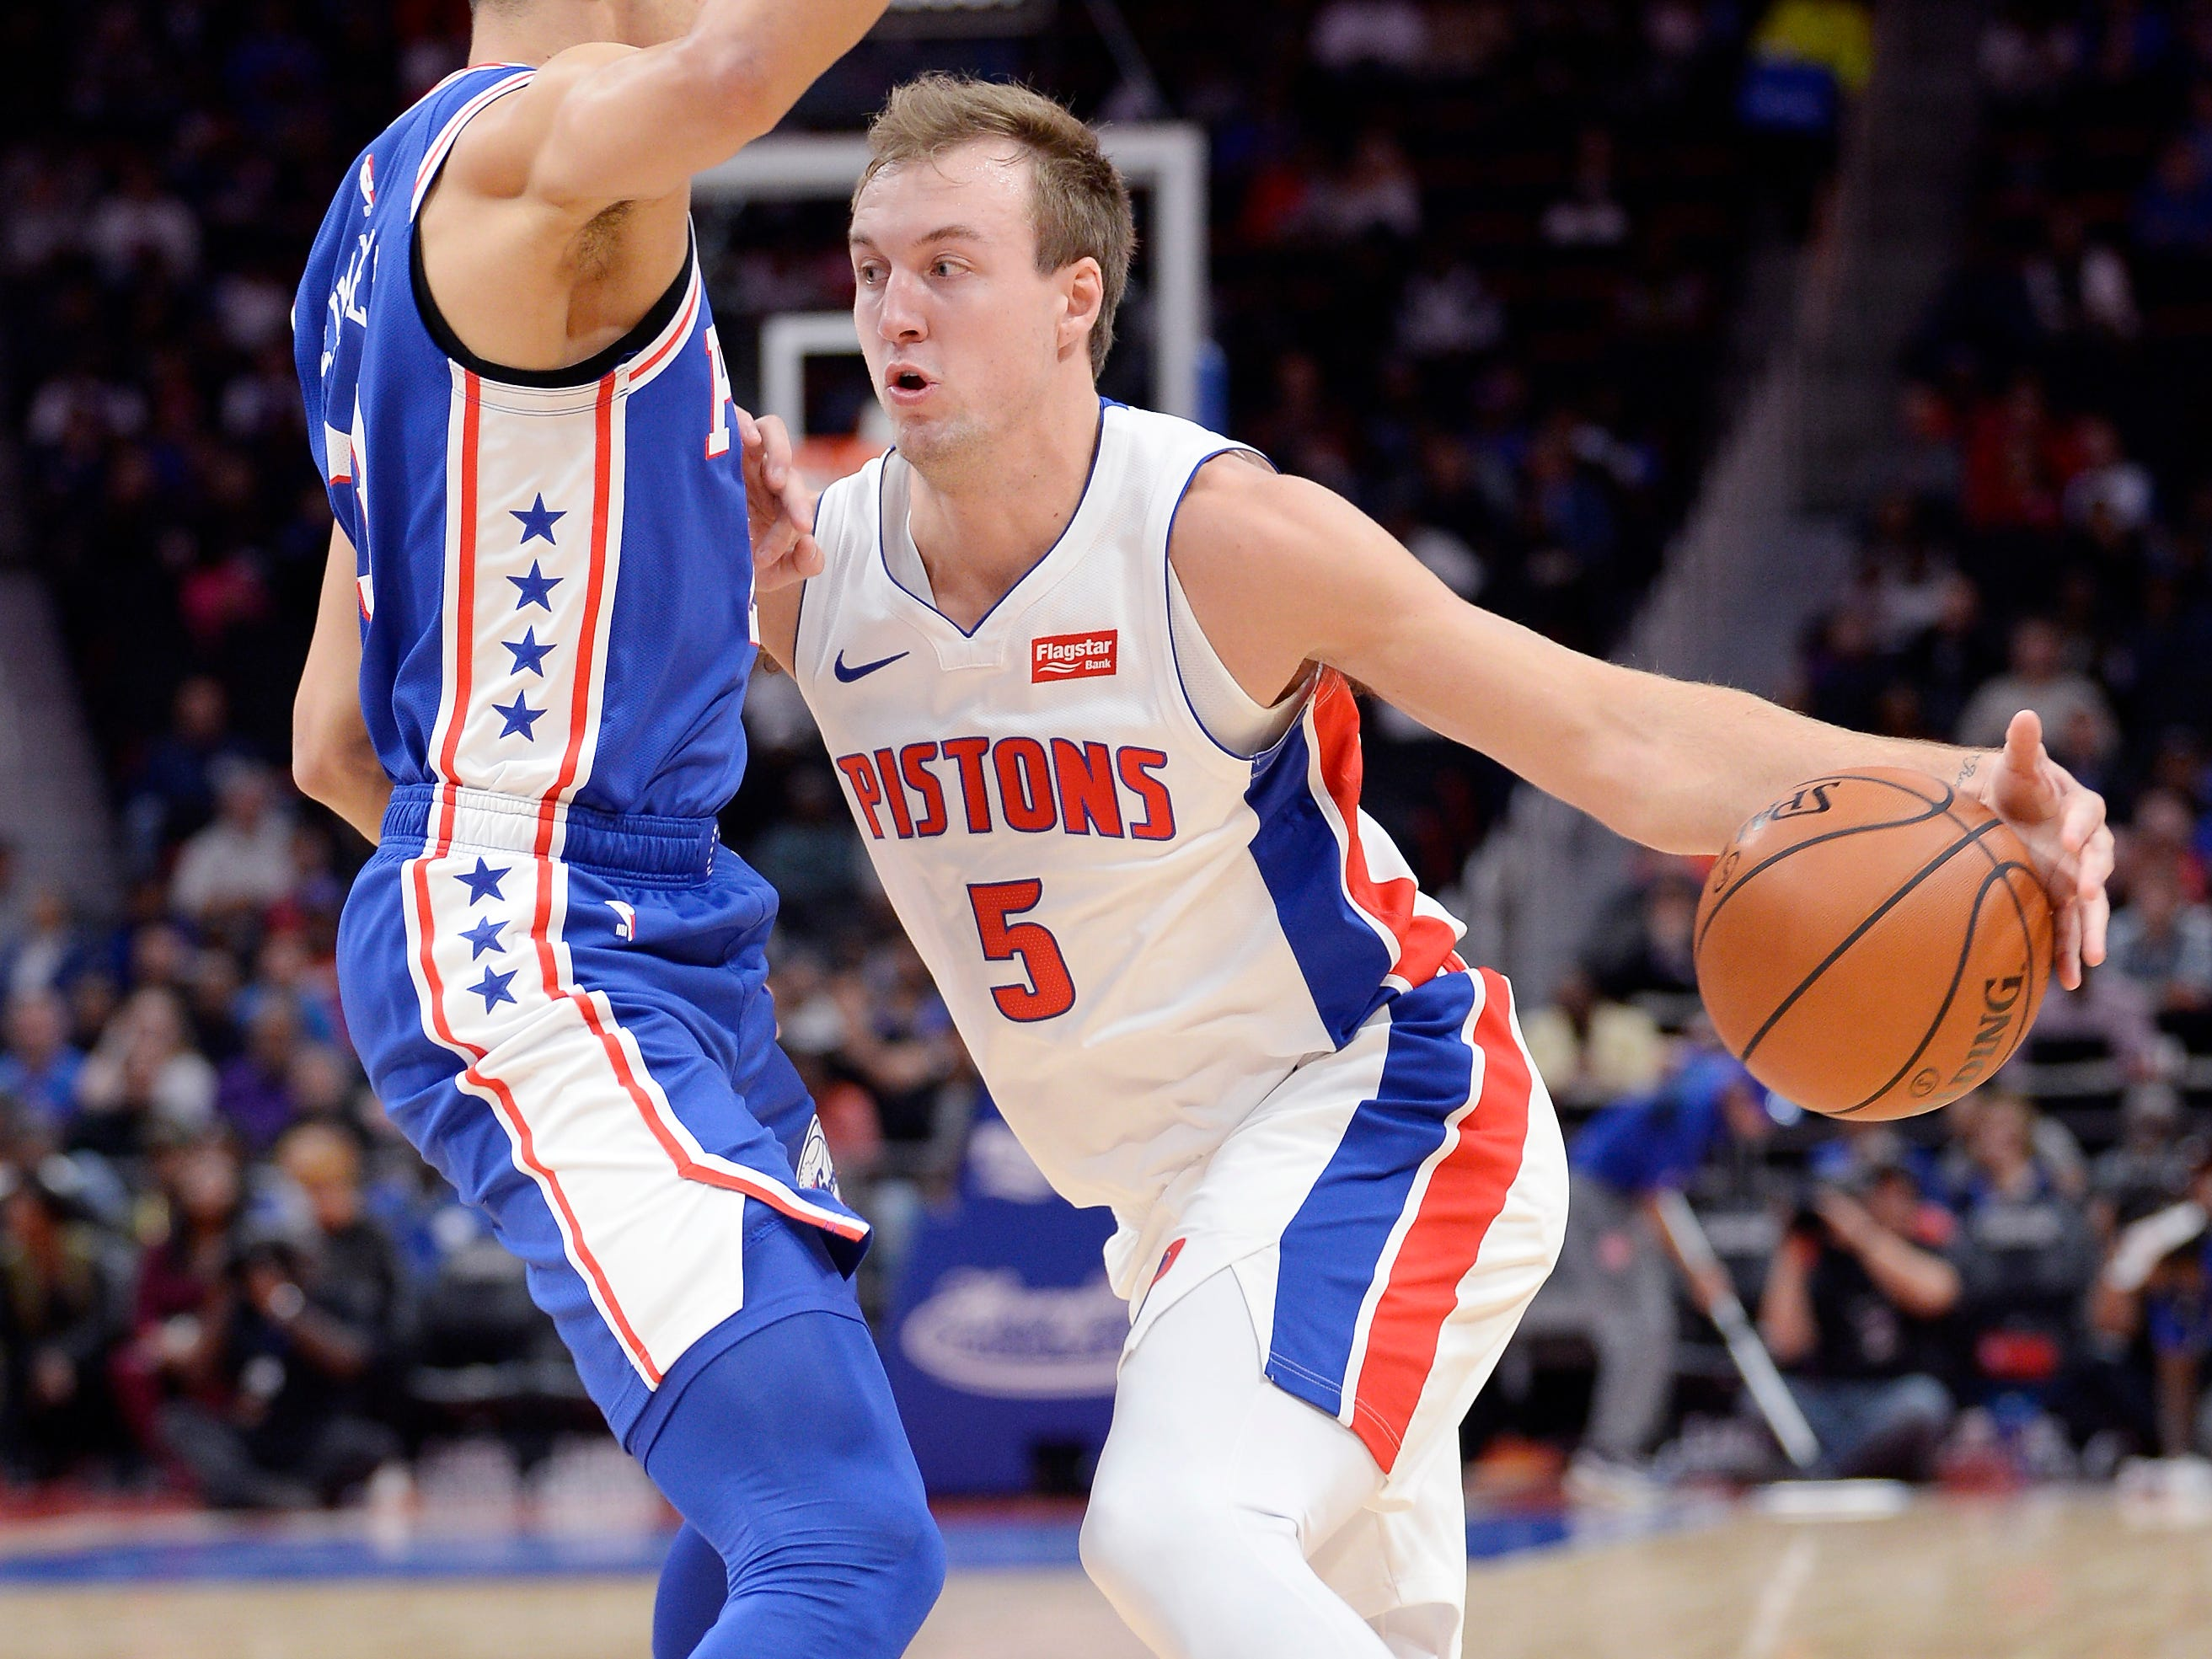 Luke Kennard -- Stats: 7.1 pts., 2.7 rebs., 36% 3FG in 23 games. Age: 22. The second-year shooter missed a big chunk of the season because of an injury and has struggled to find a good groove since. Aside from a big 28-point game, he has been up and down and needs to look for his shot more aggressively and improve his defense. Grade: C